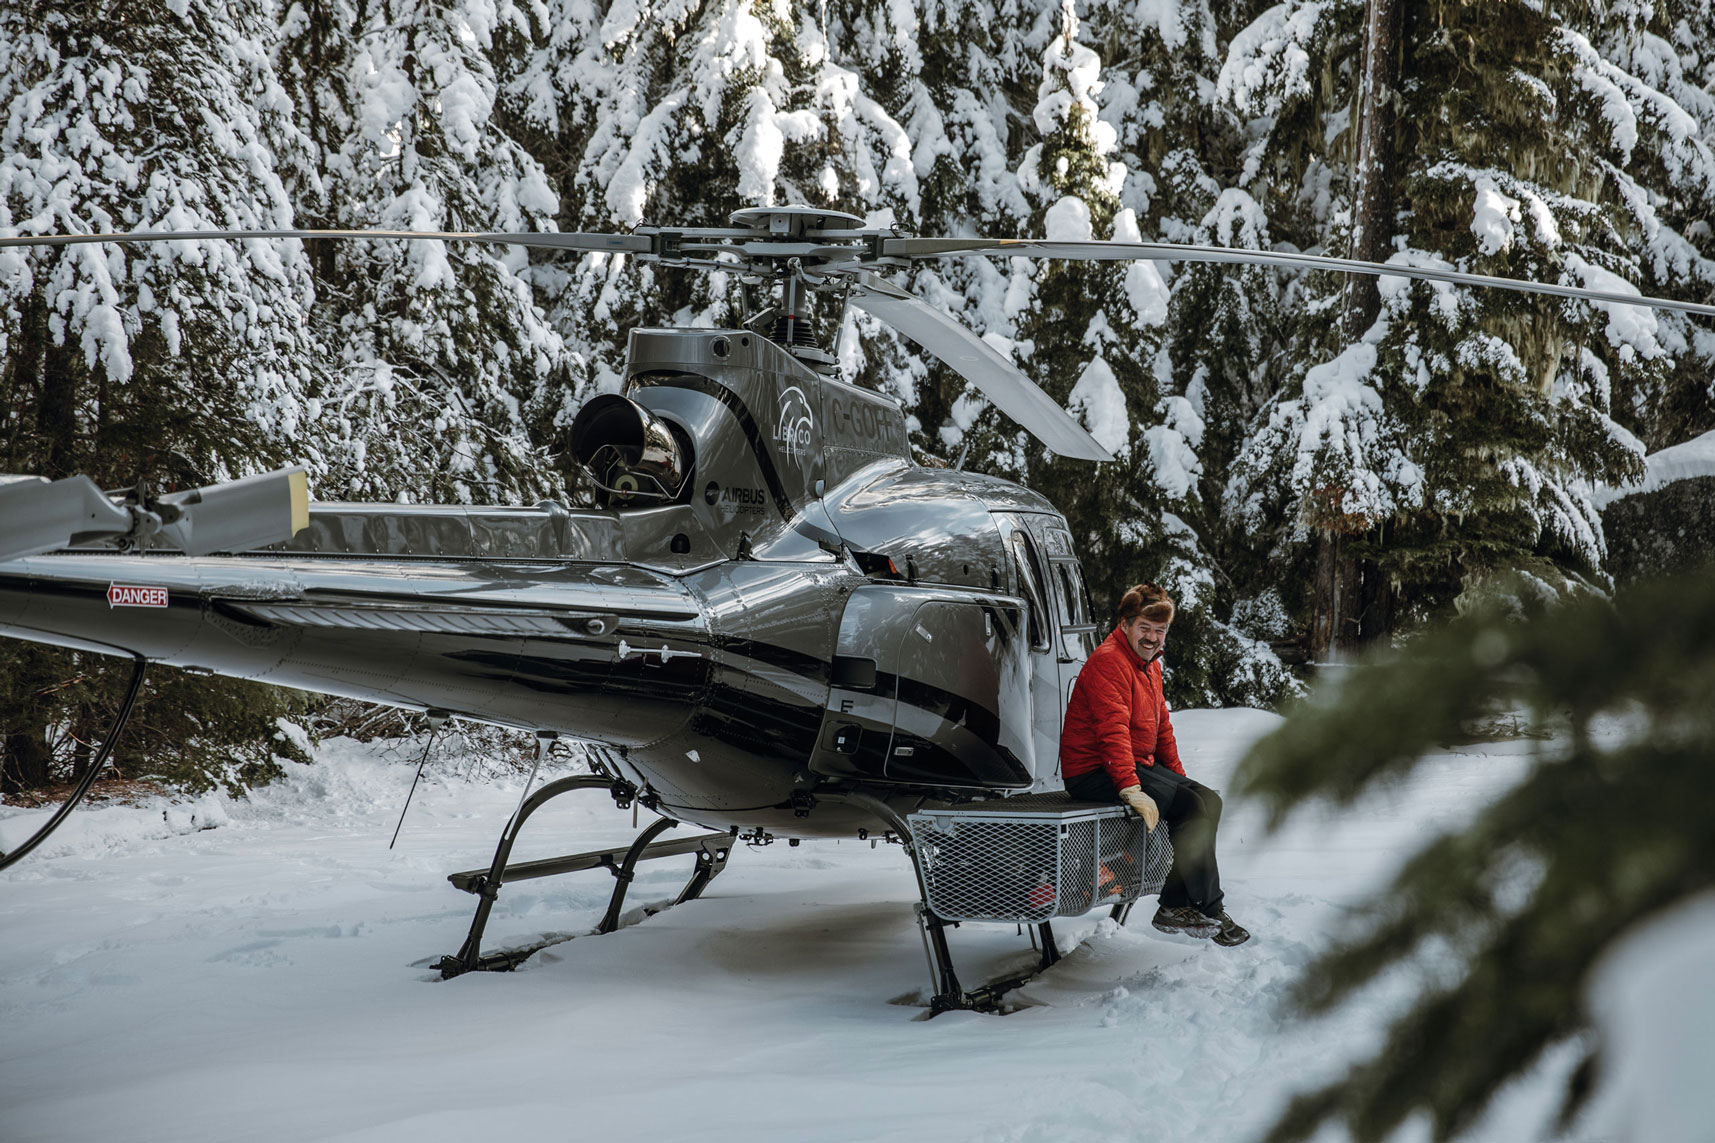 Pilot John Faulkner sitting beside the Falcon helicopter